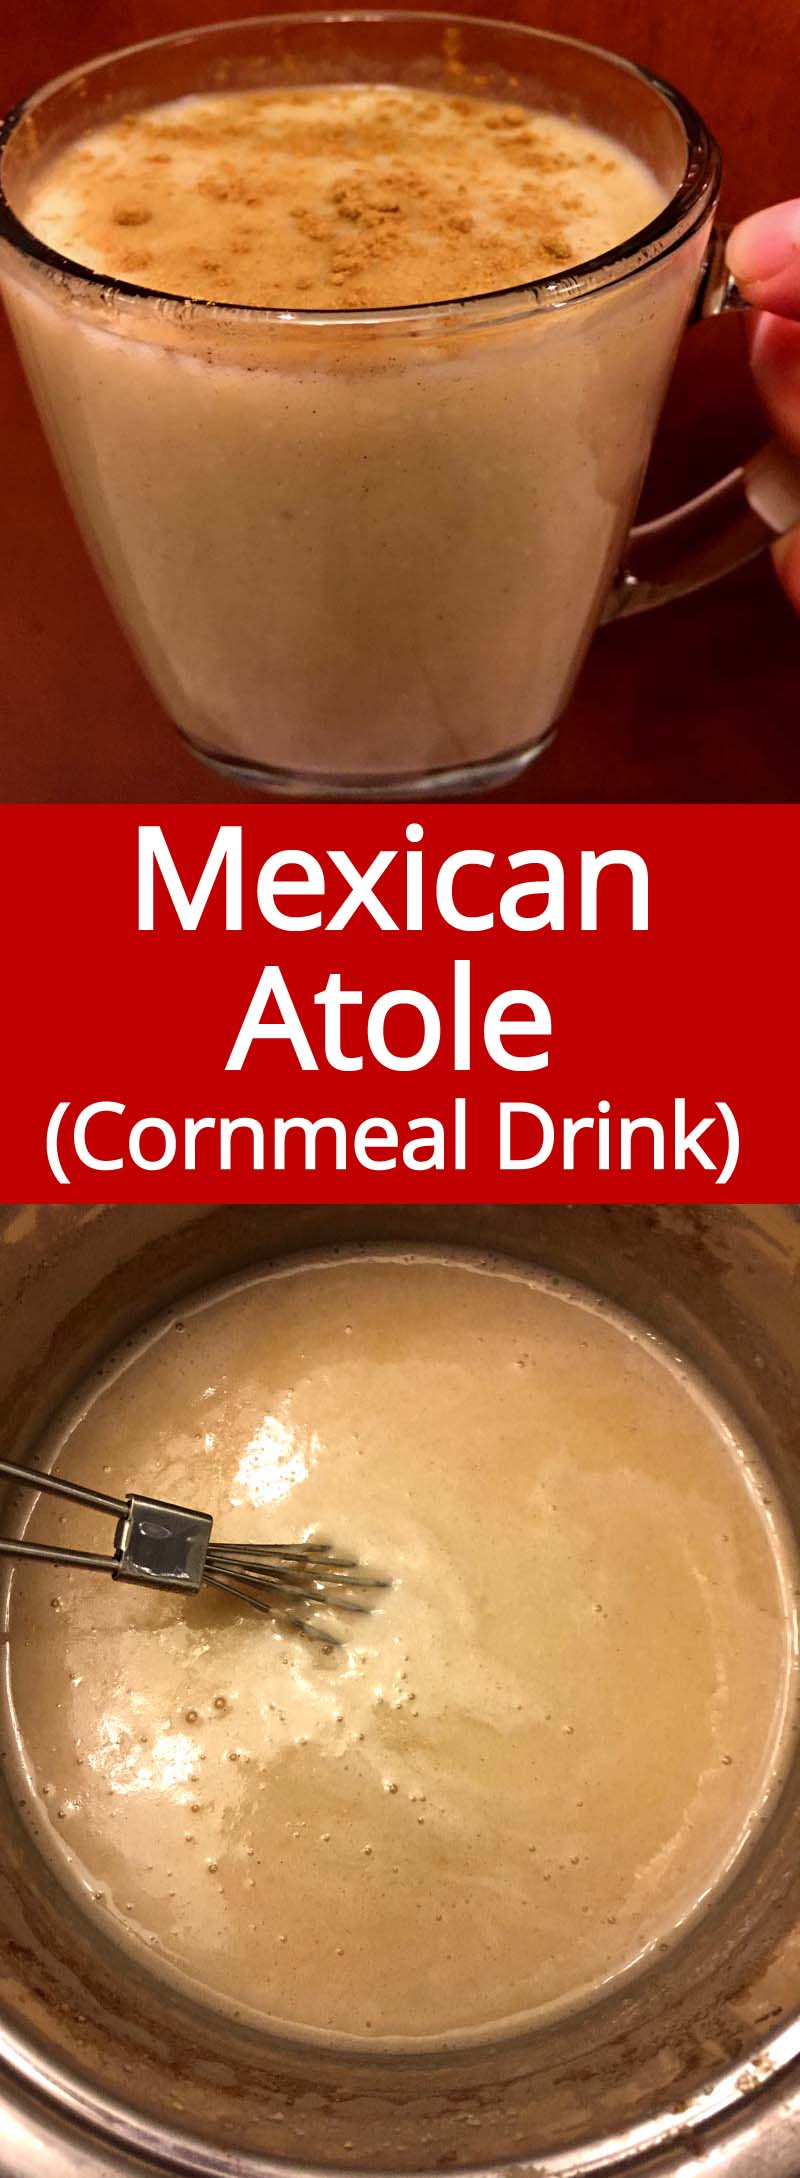 Mexican Atole Hot Drink Recipe Melanie Cooks